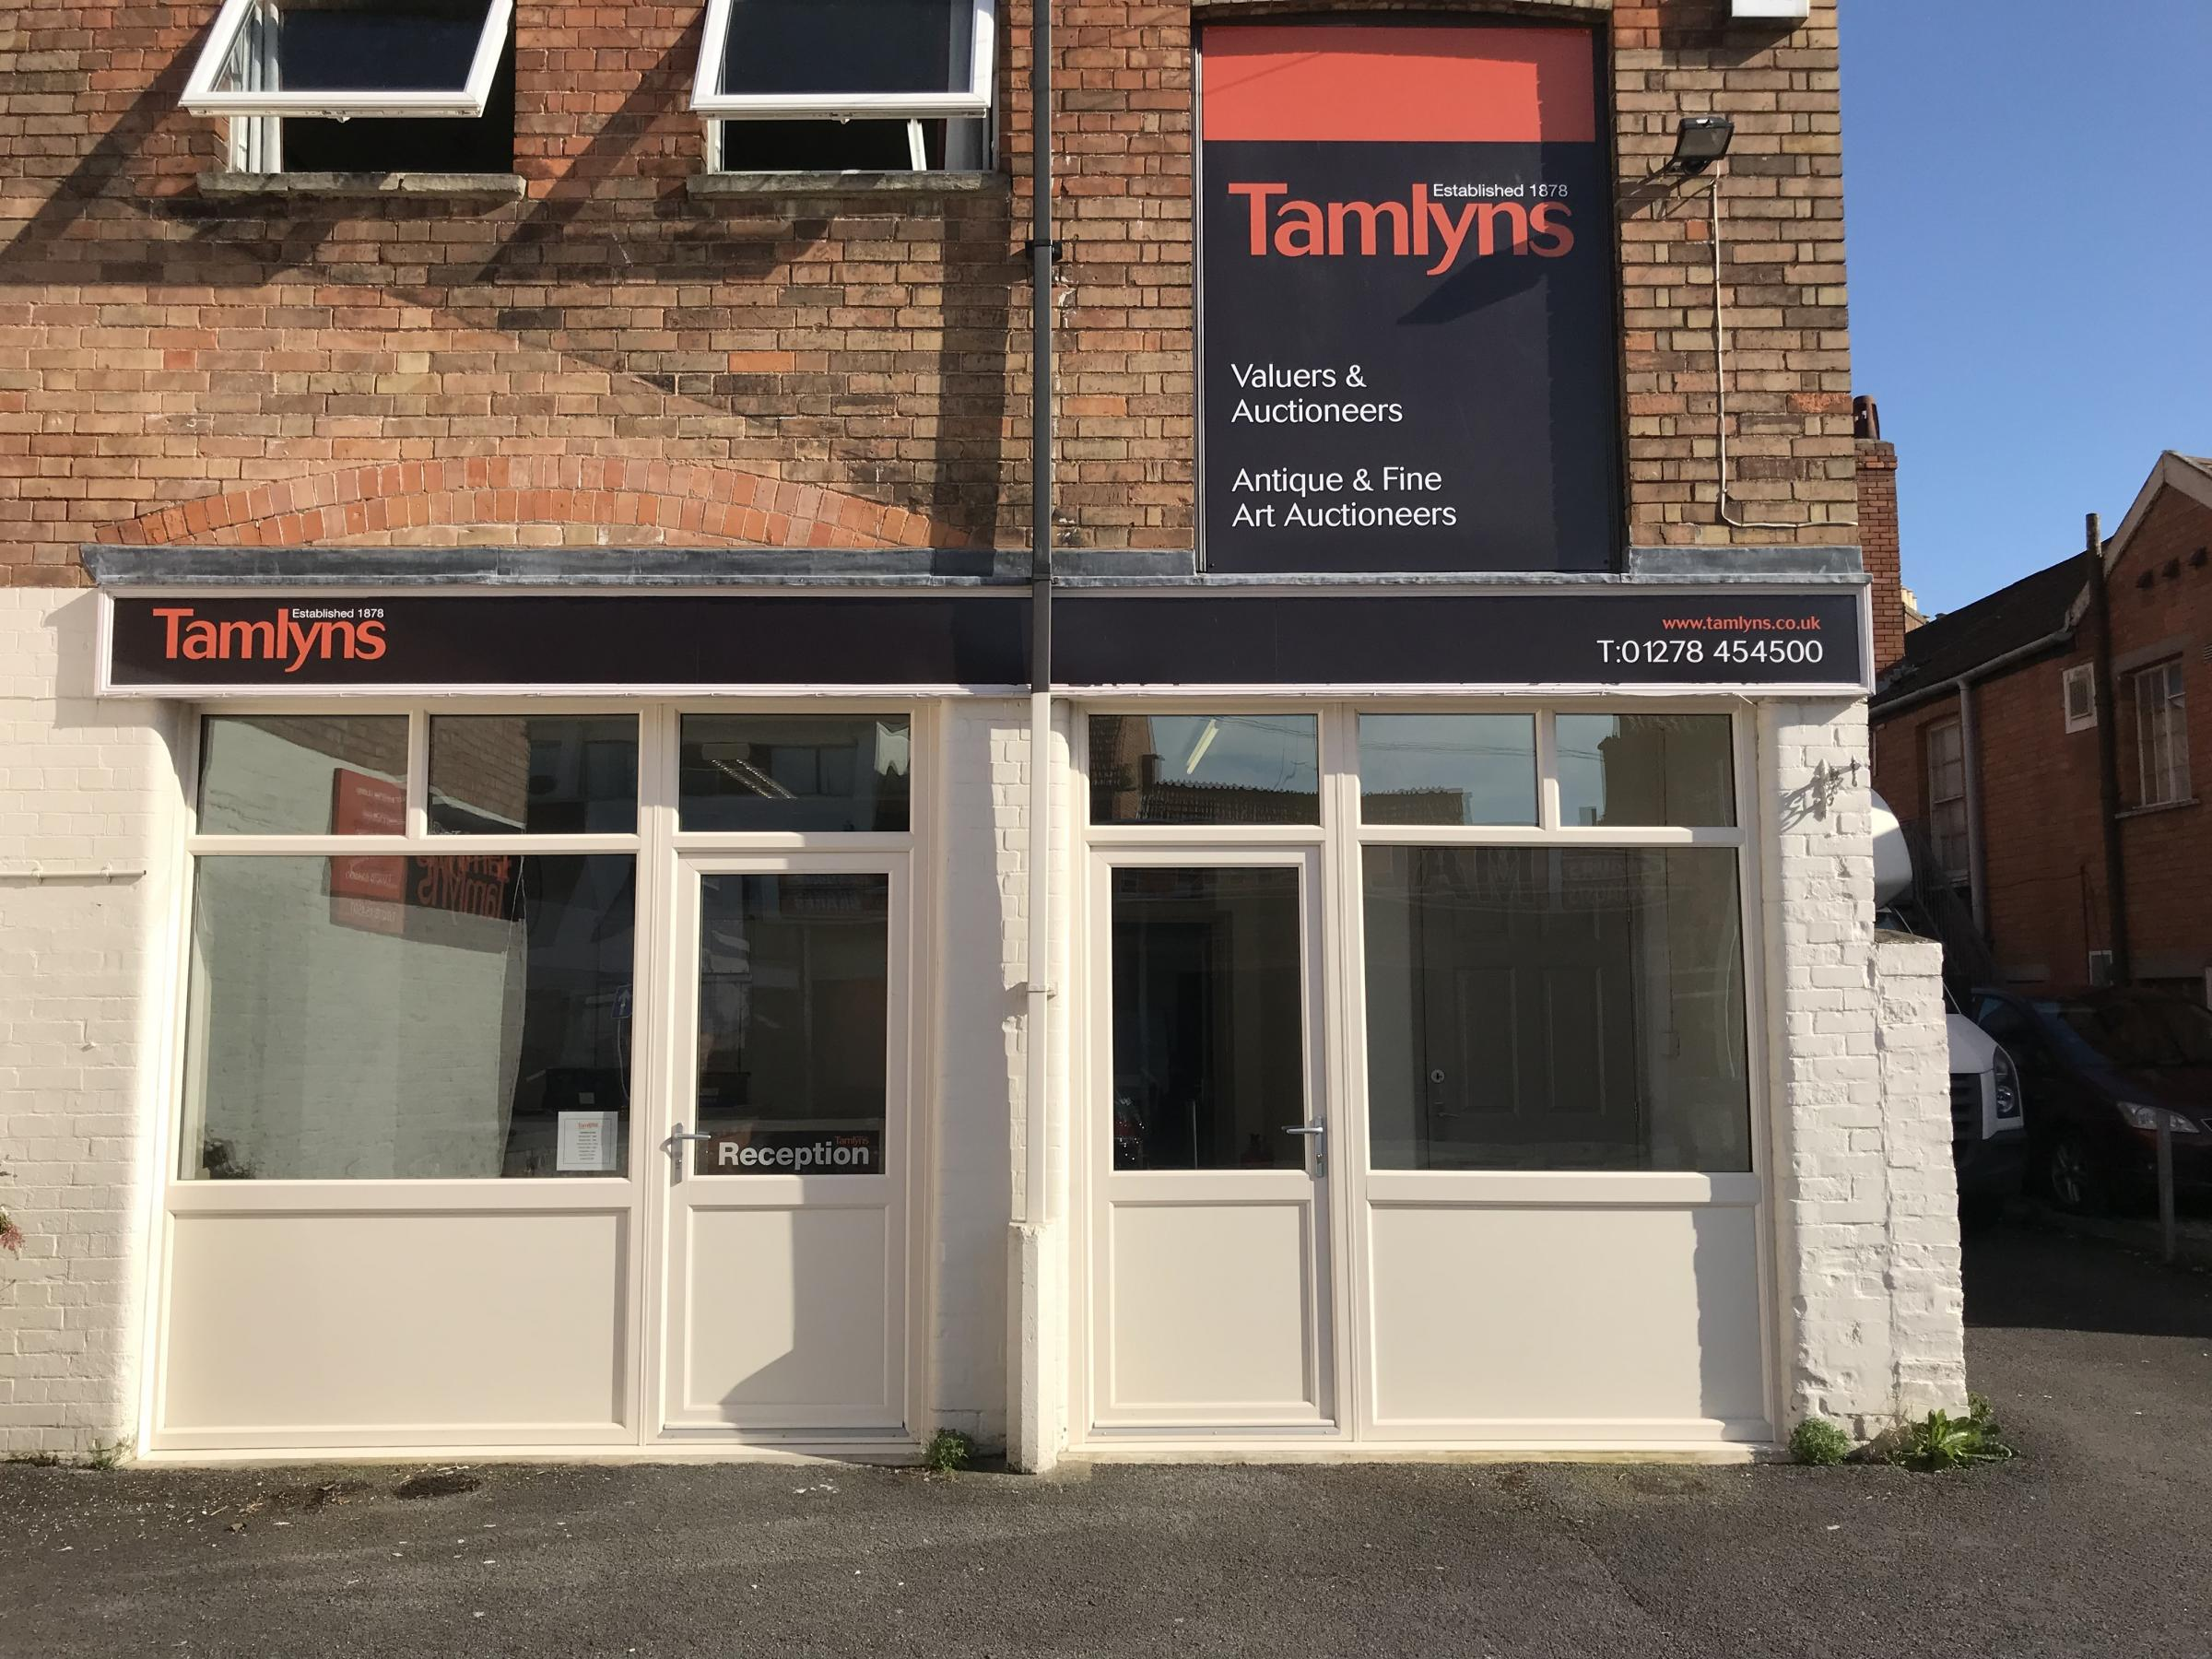 AUCTIONS: Tamlyns Auction Rooms in Bridgwater